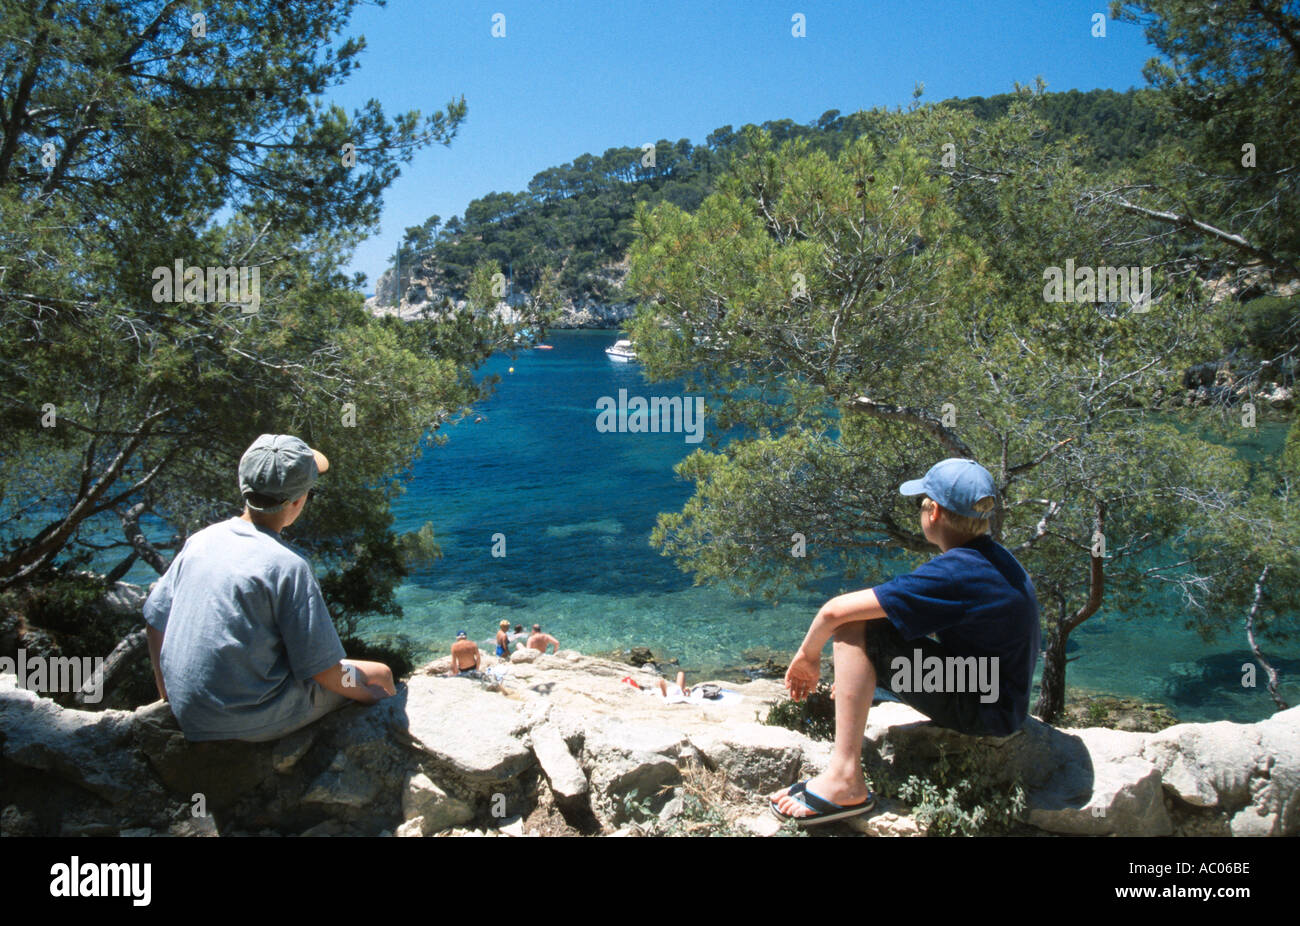 two boys looking out to sea over a picturesque cove port d allon